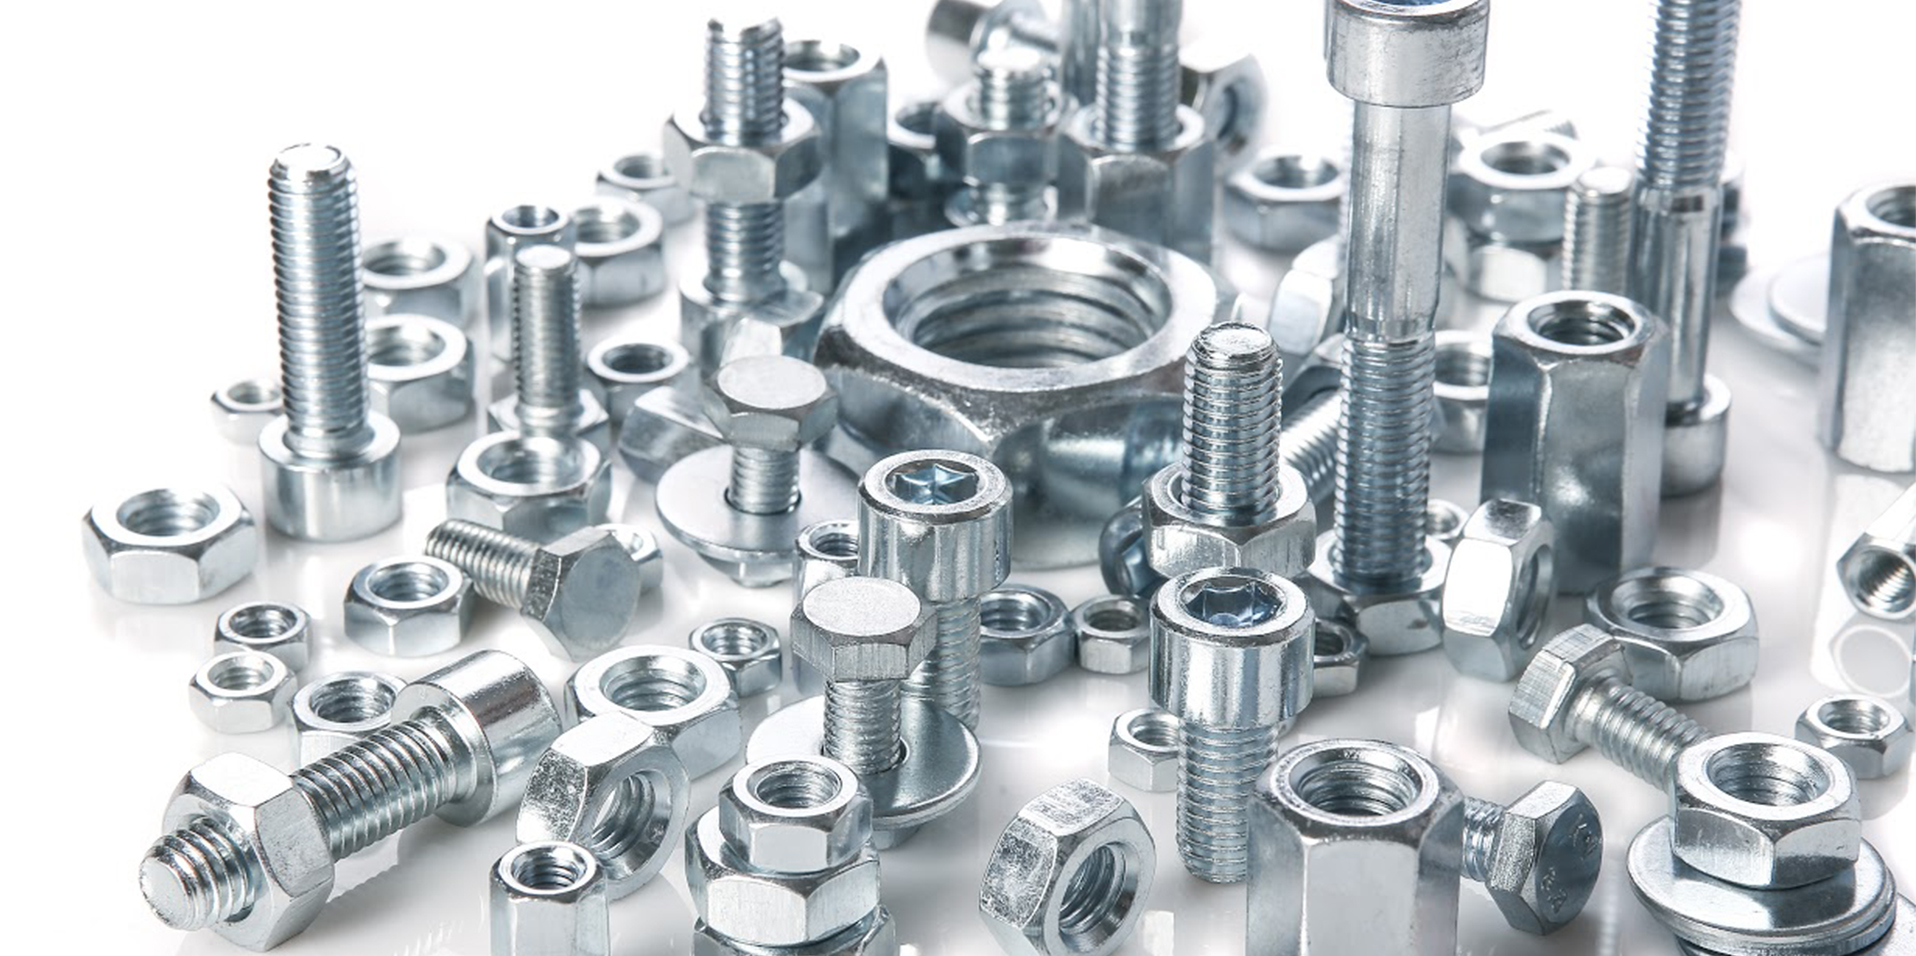 Marcopol fasteners and fixings